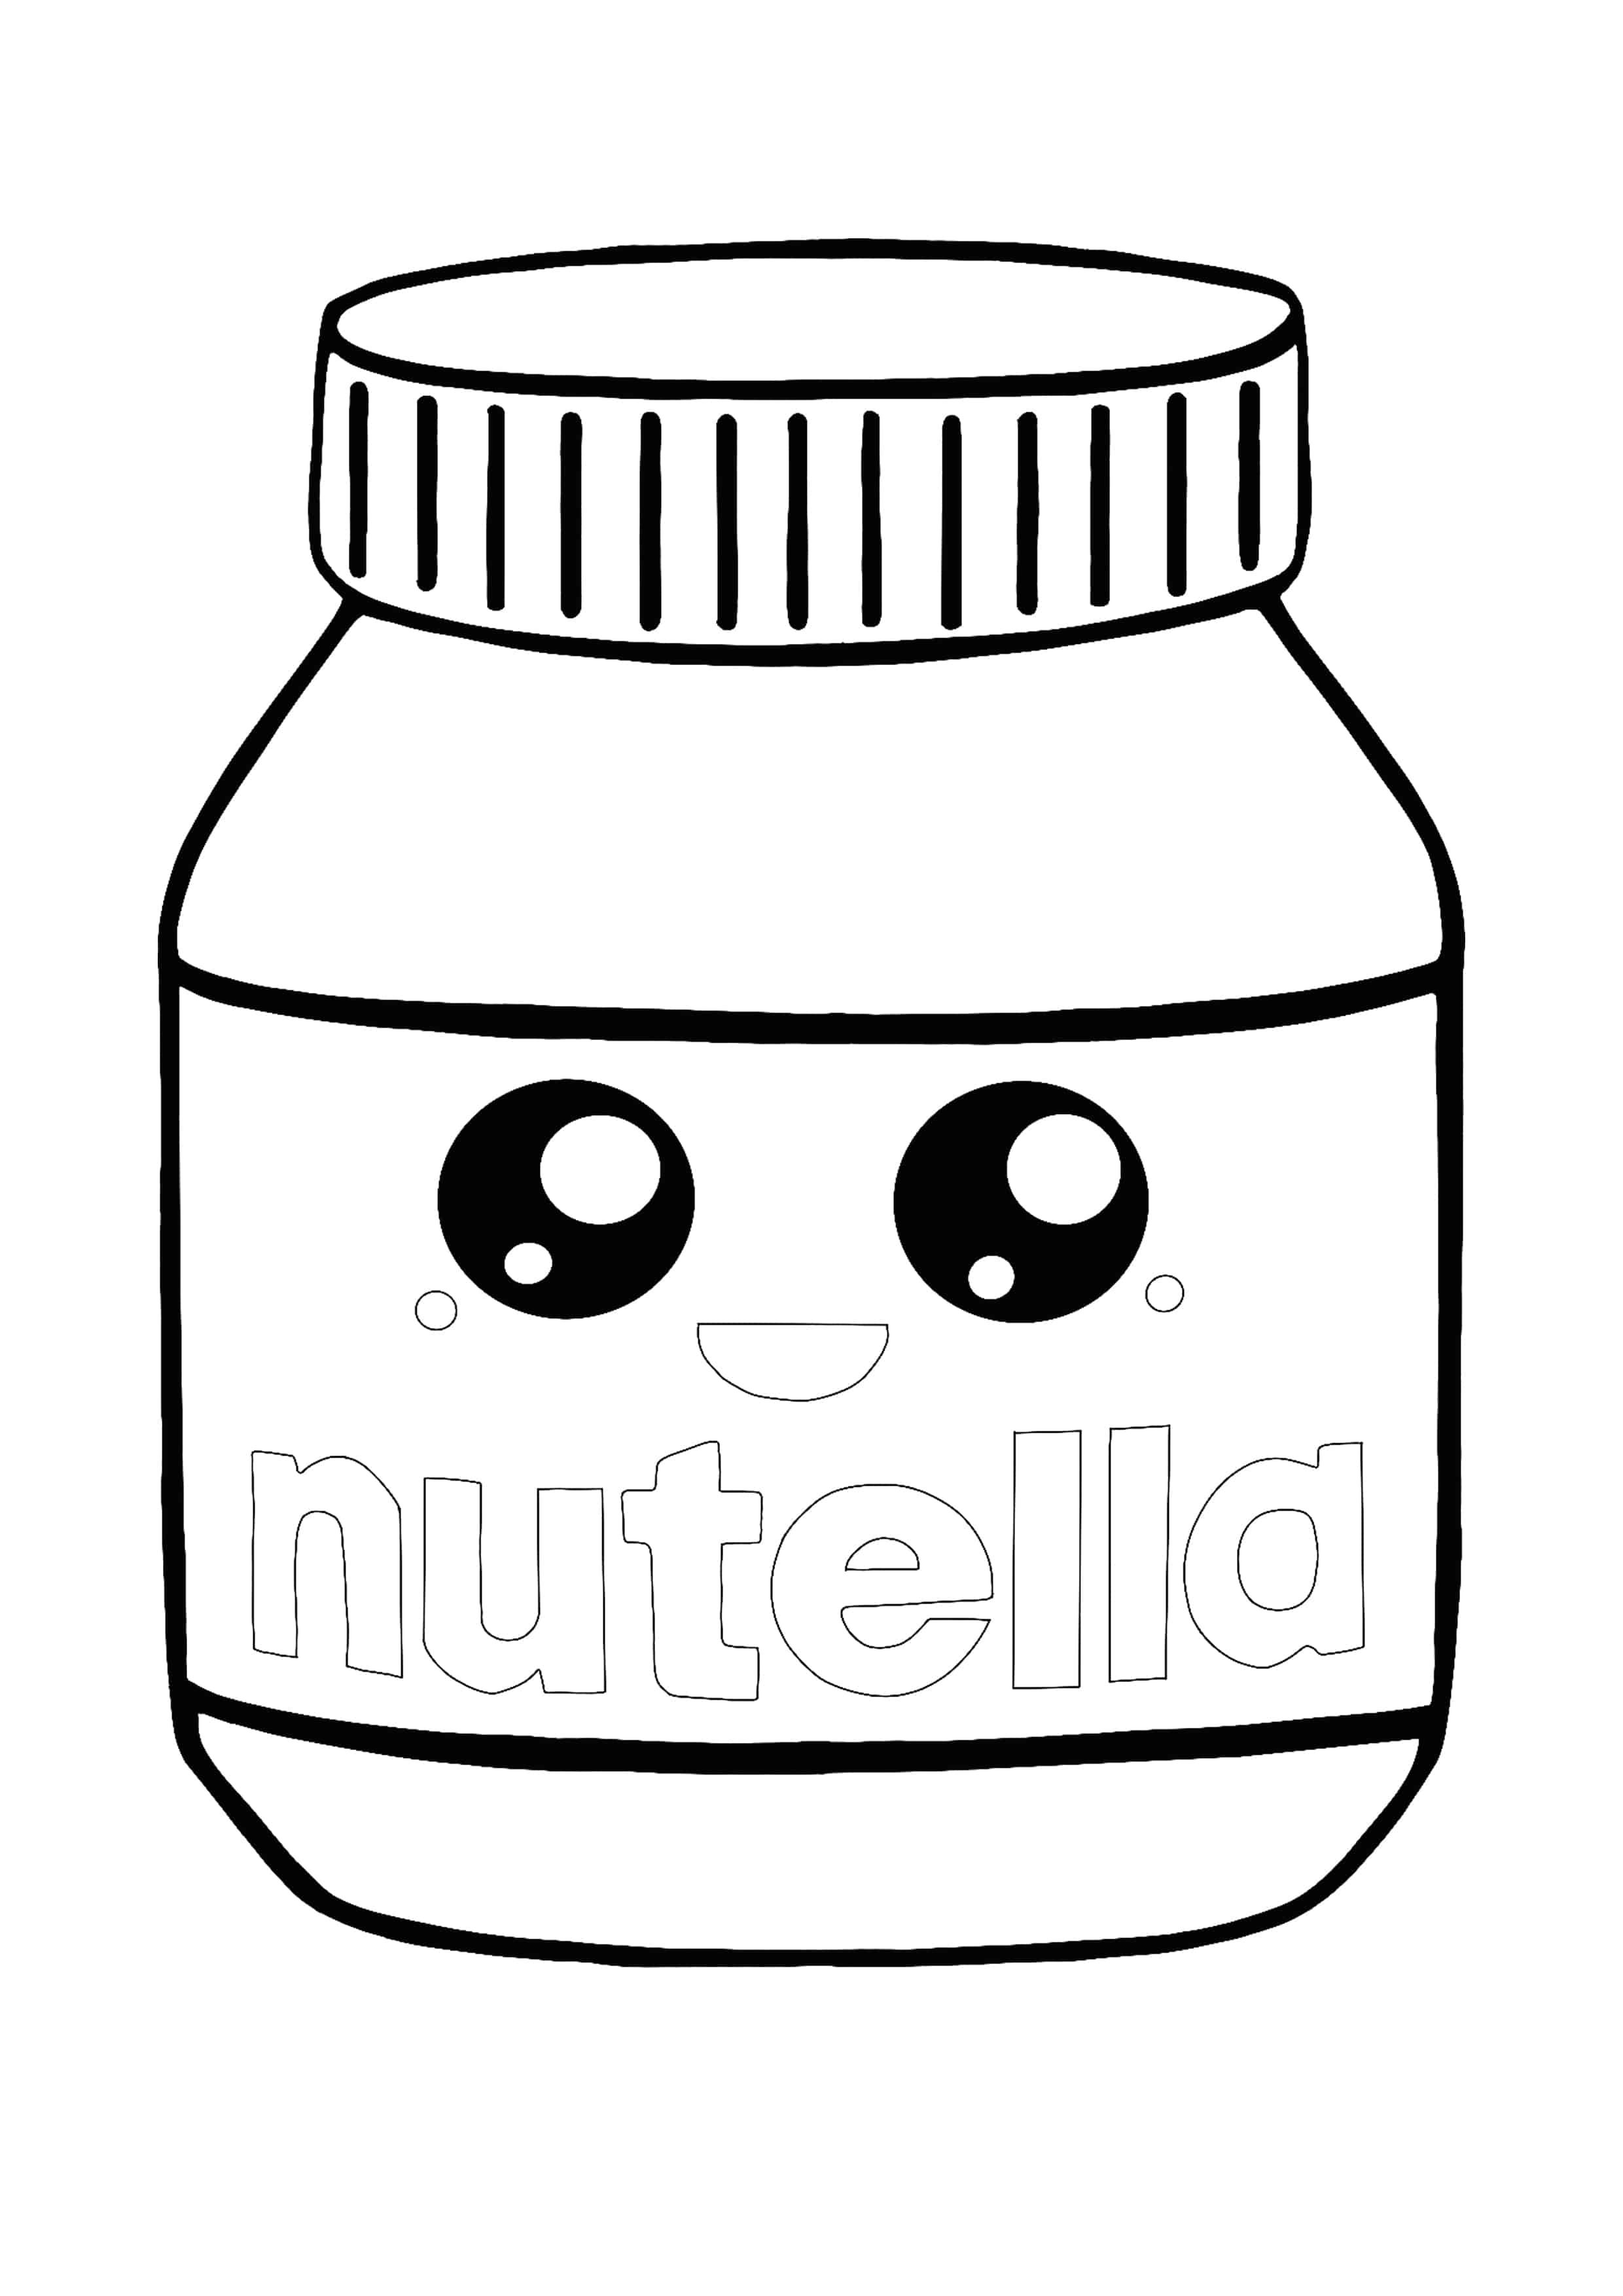 Kawaii Nutella coloring page  Free kids coloring pages, Toy story